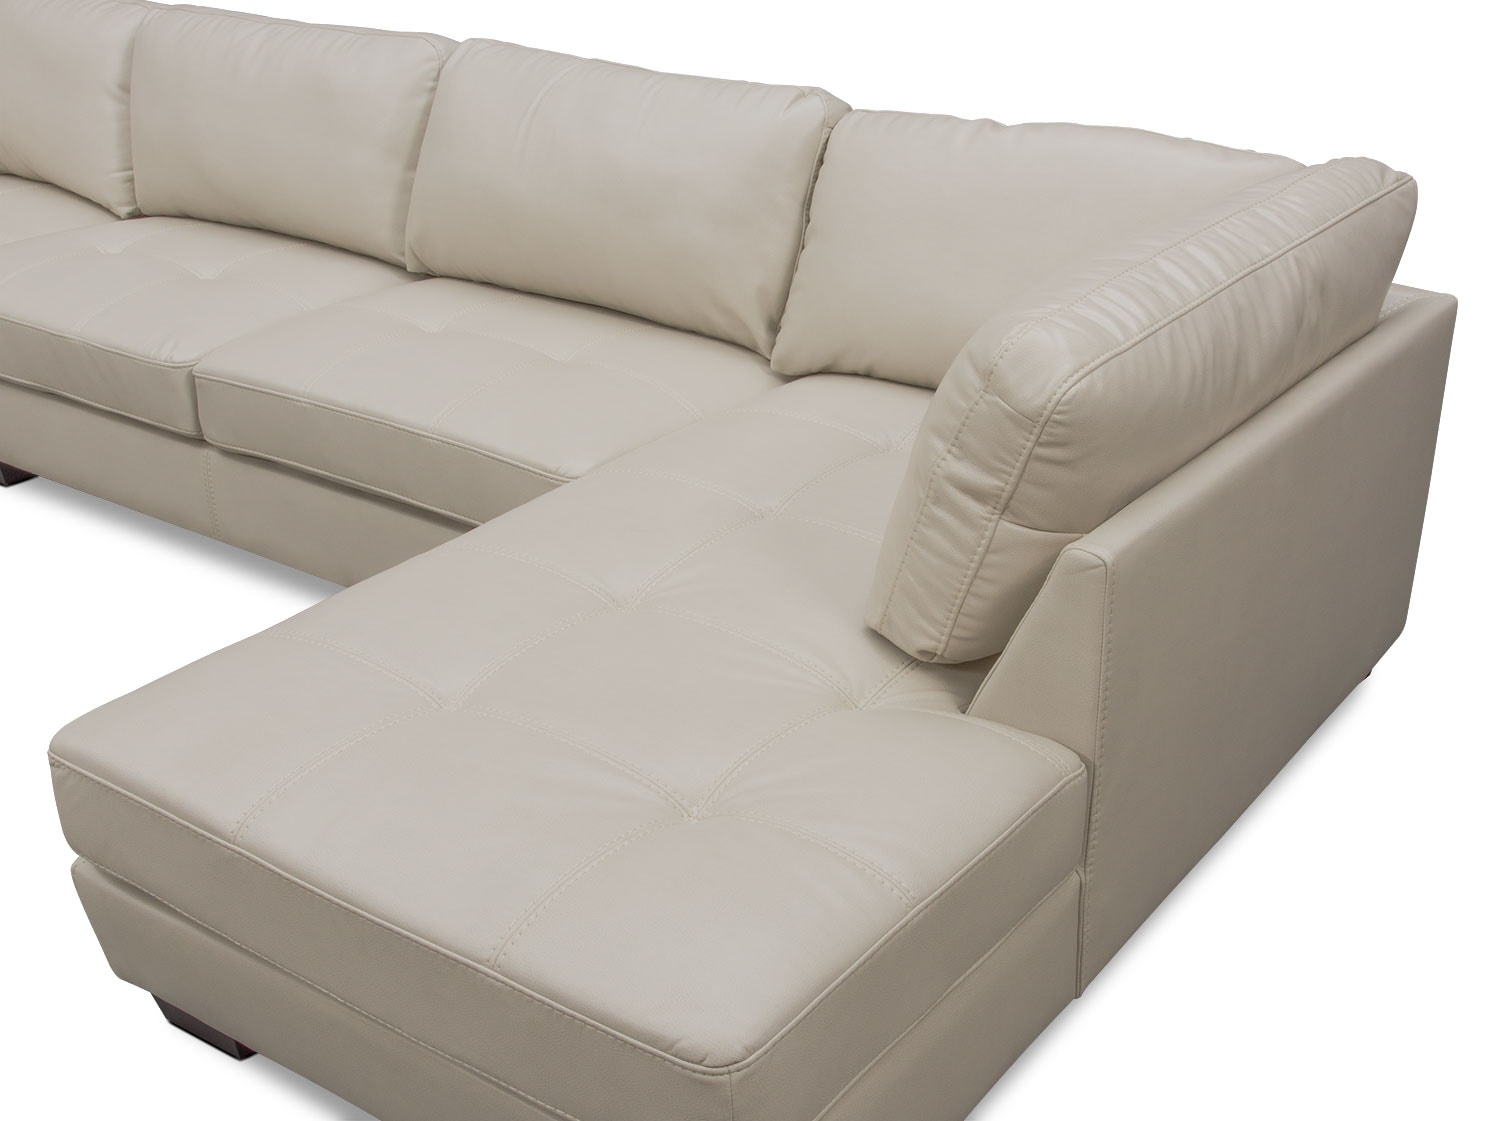 Santana 4 piece sectional with right facing chaise ivory for 4 piece sectional with chaise